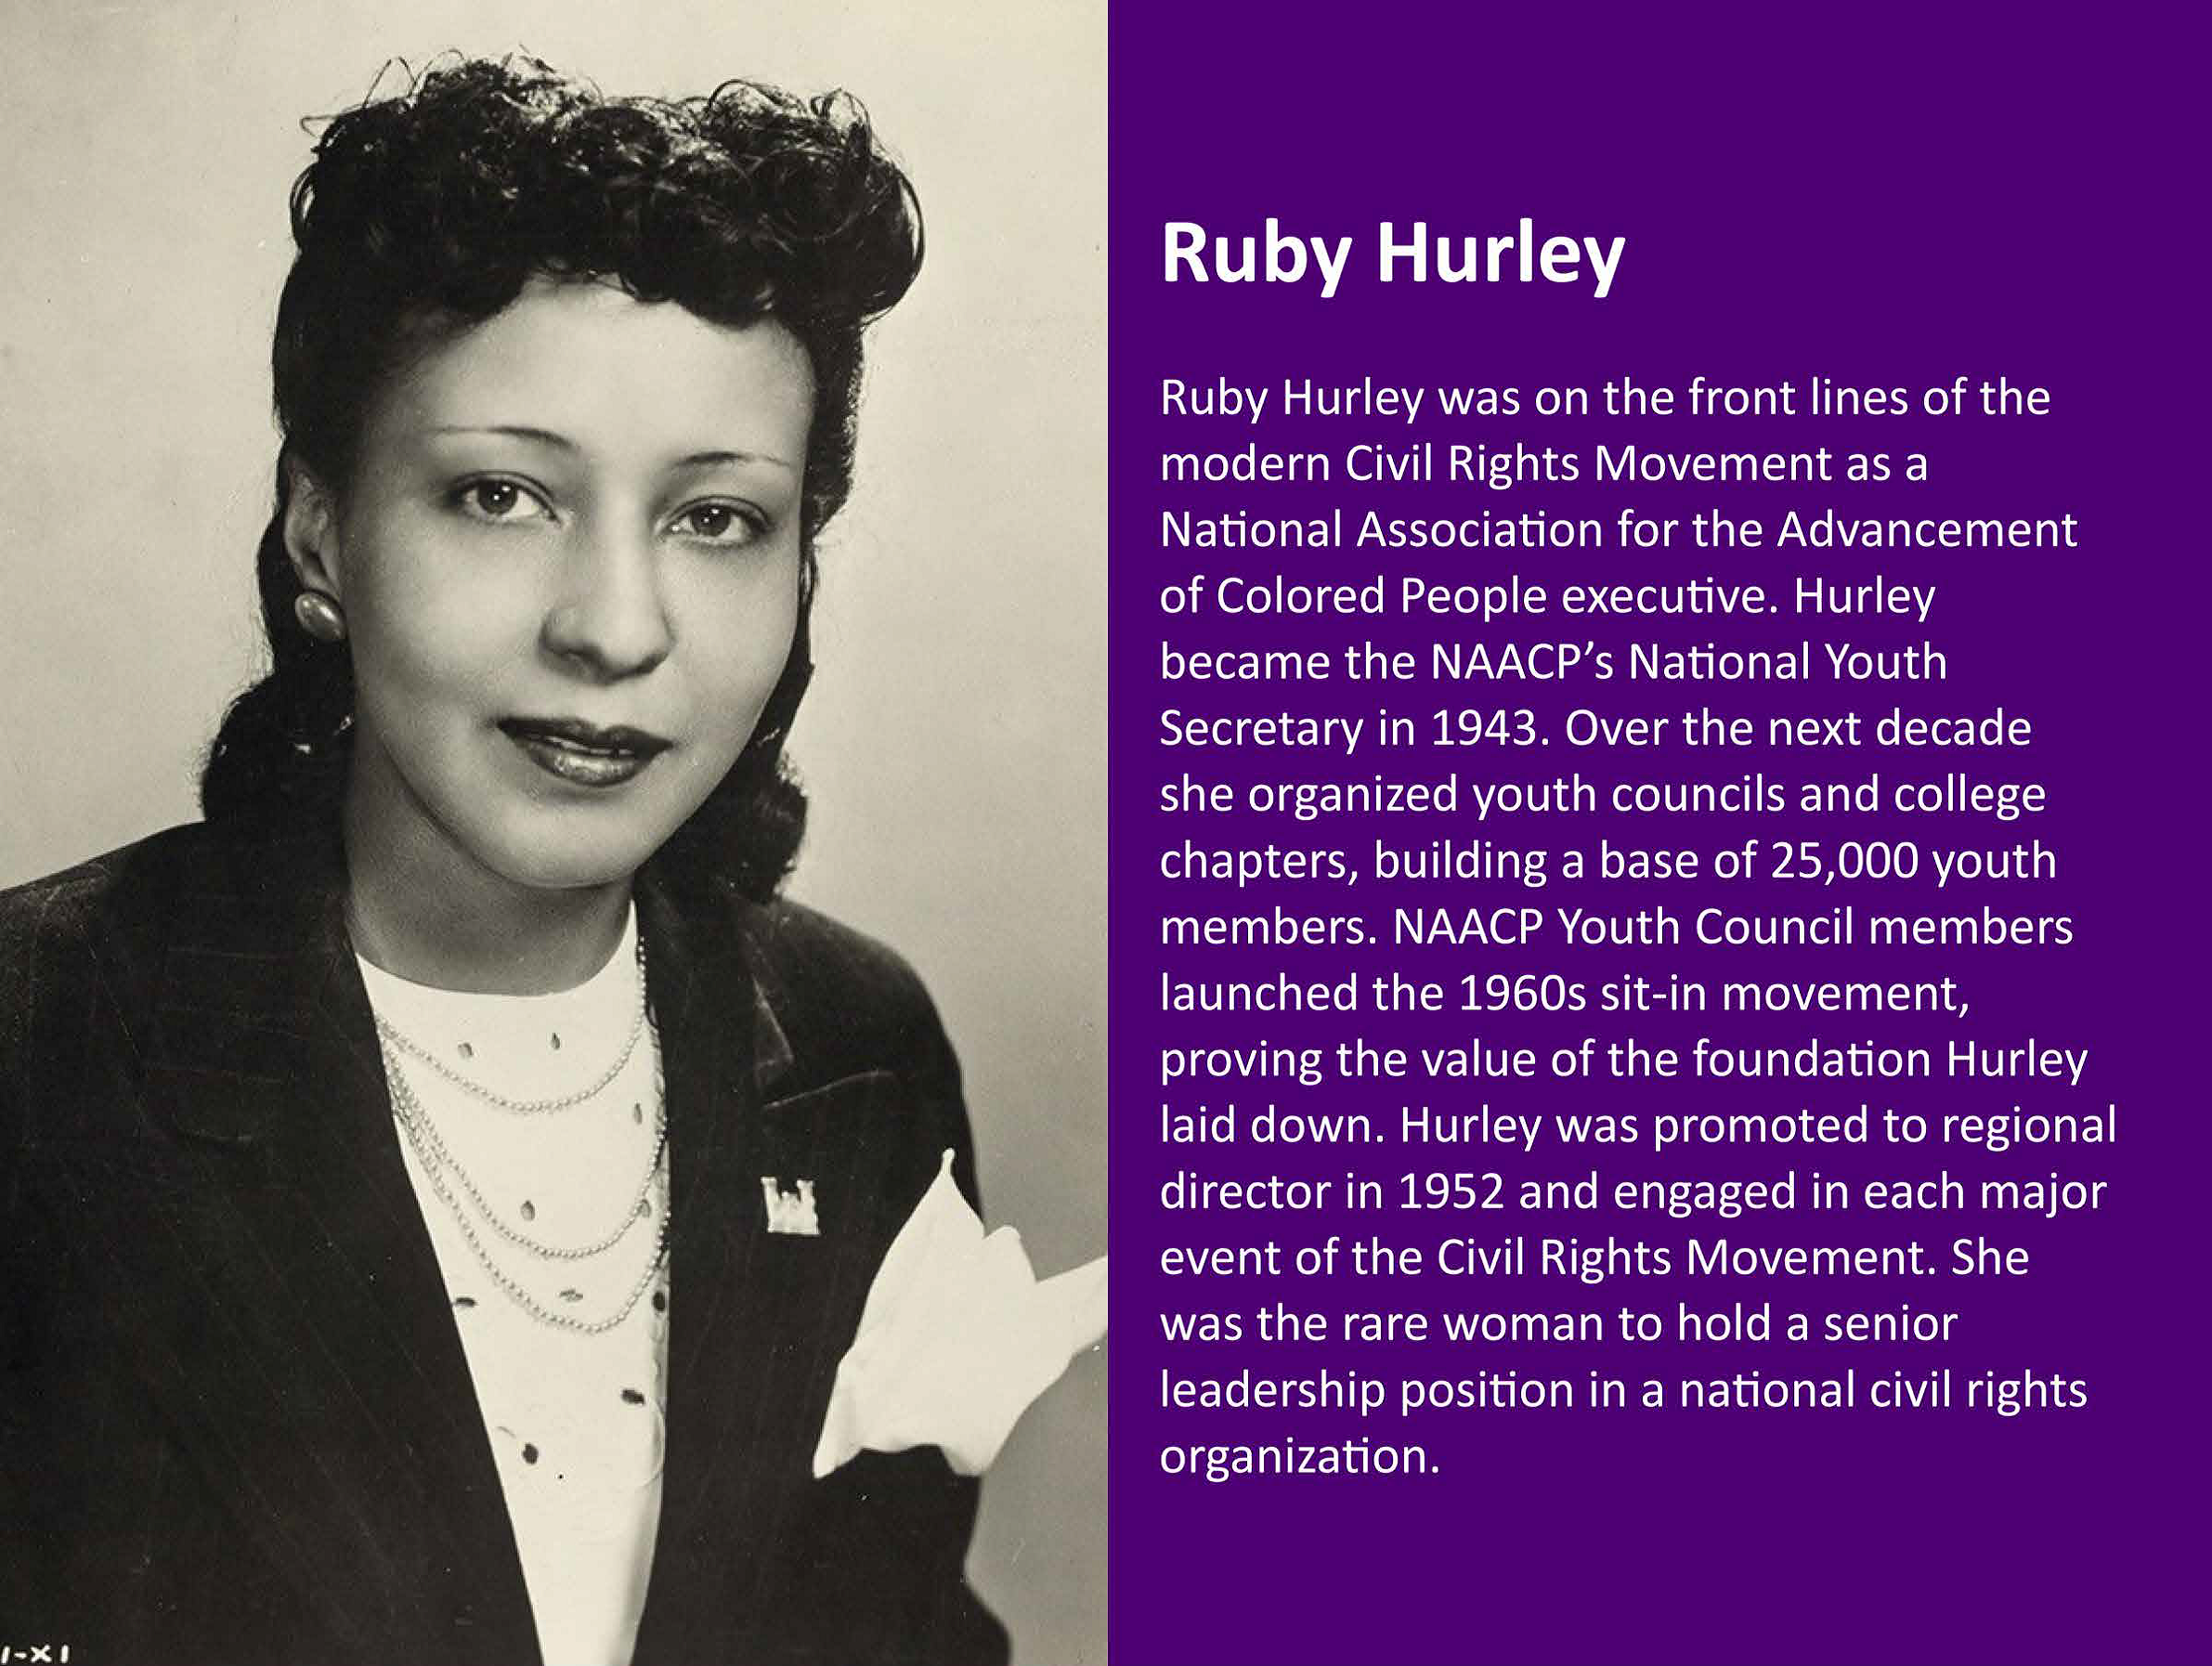 Ruby Hurley was on the front lines of the modern Civil Rights Movement as a National Association for the Advancement of Colored People executive. Hurley became the NAACP's National Youth Secretary in 1943. Over the next decade she organized youth councils and college chapters, building a base of 25,000 youth members. NAACP Youth Council members launched the 1960s sit-in movement, proving the value of the foundation Hurley laid down. Hurley was promoted to regional director in 1952 and engaged in each major even of the Civil Rights Movement. She was the rare woman to hold a senior leadership position in a national civil rights organization.